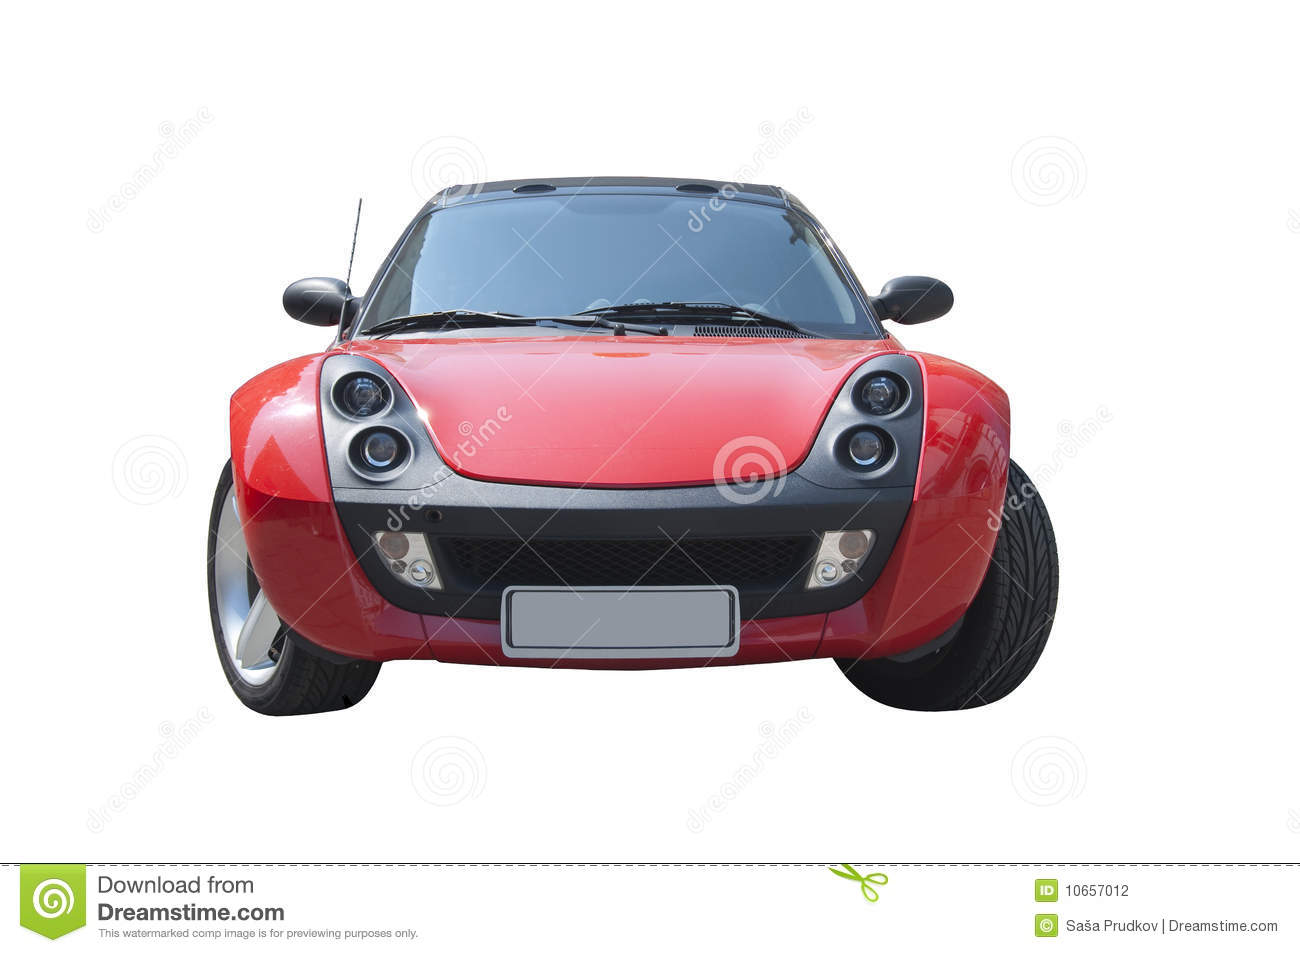 Red Smart Roadster sports car